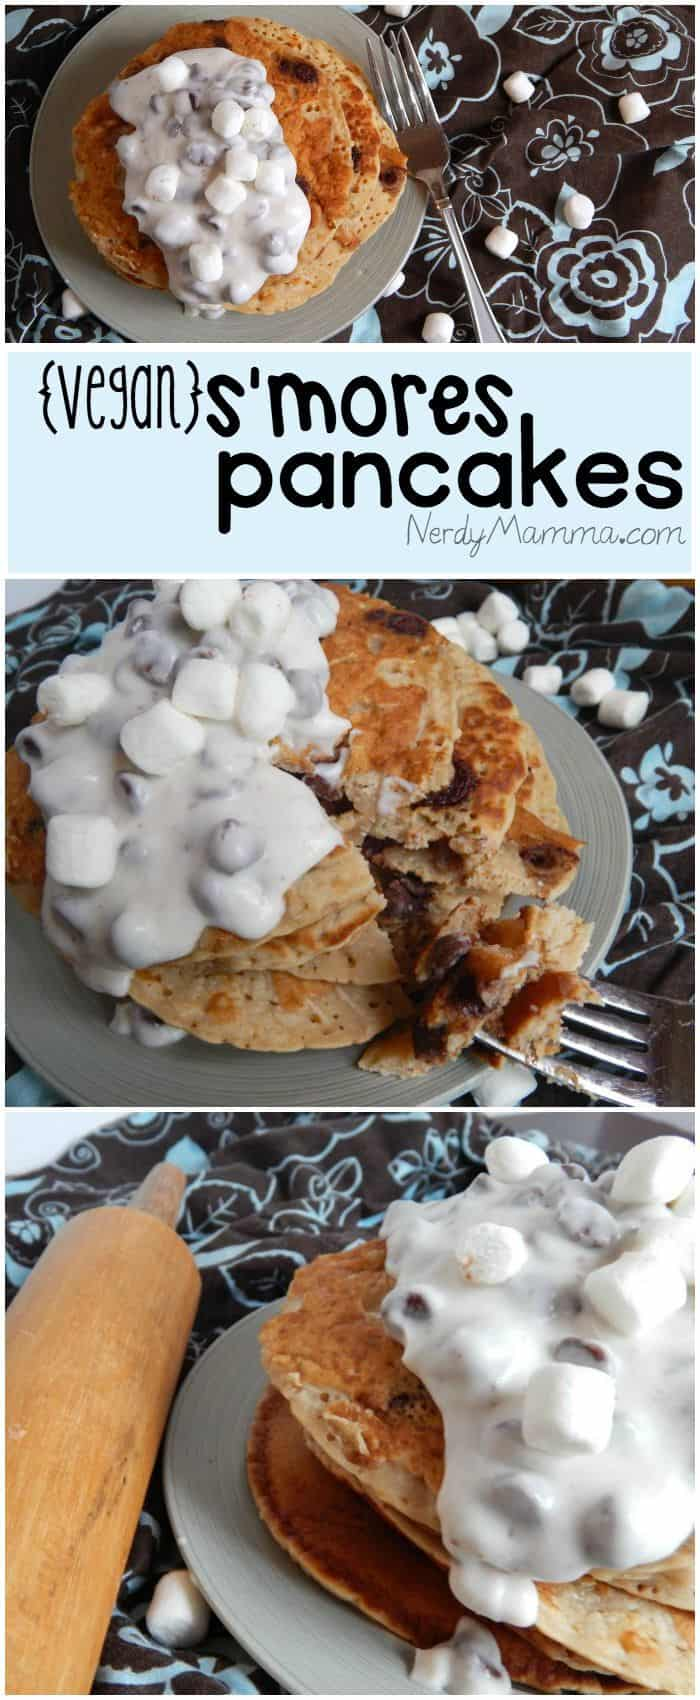 These vegan s'mores pancakes are so easy and yummy, too.